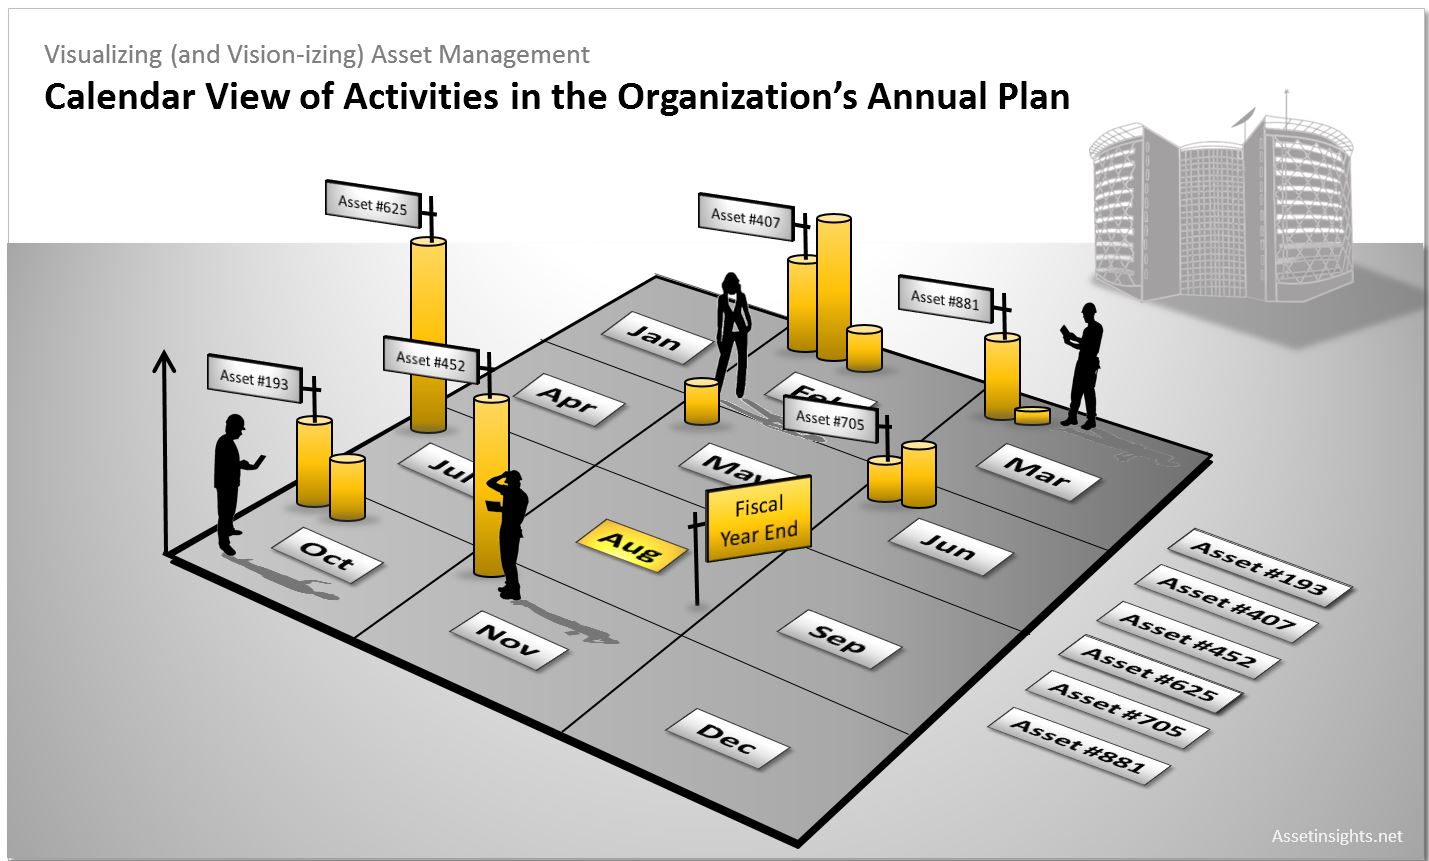 The calendar view still represents one of the best tools to visualize work distributions and to manage the many tasks in the Asset Management Plan (AMP